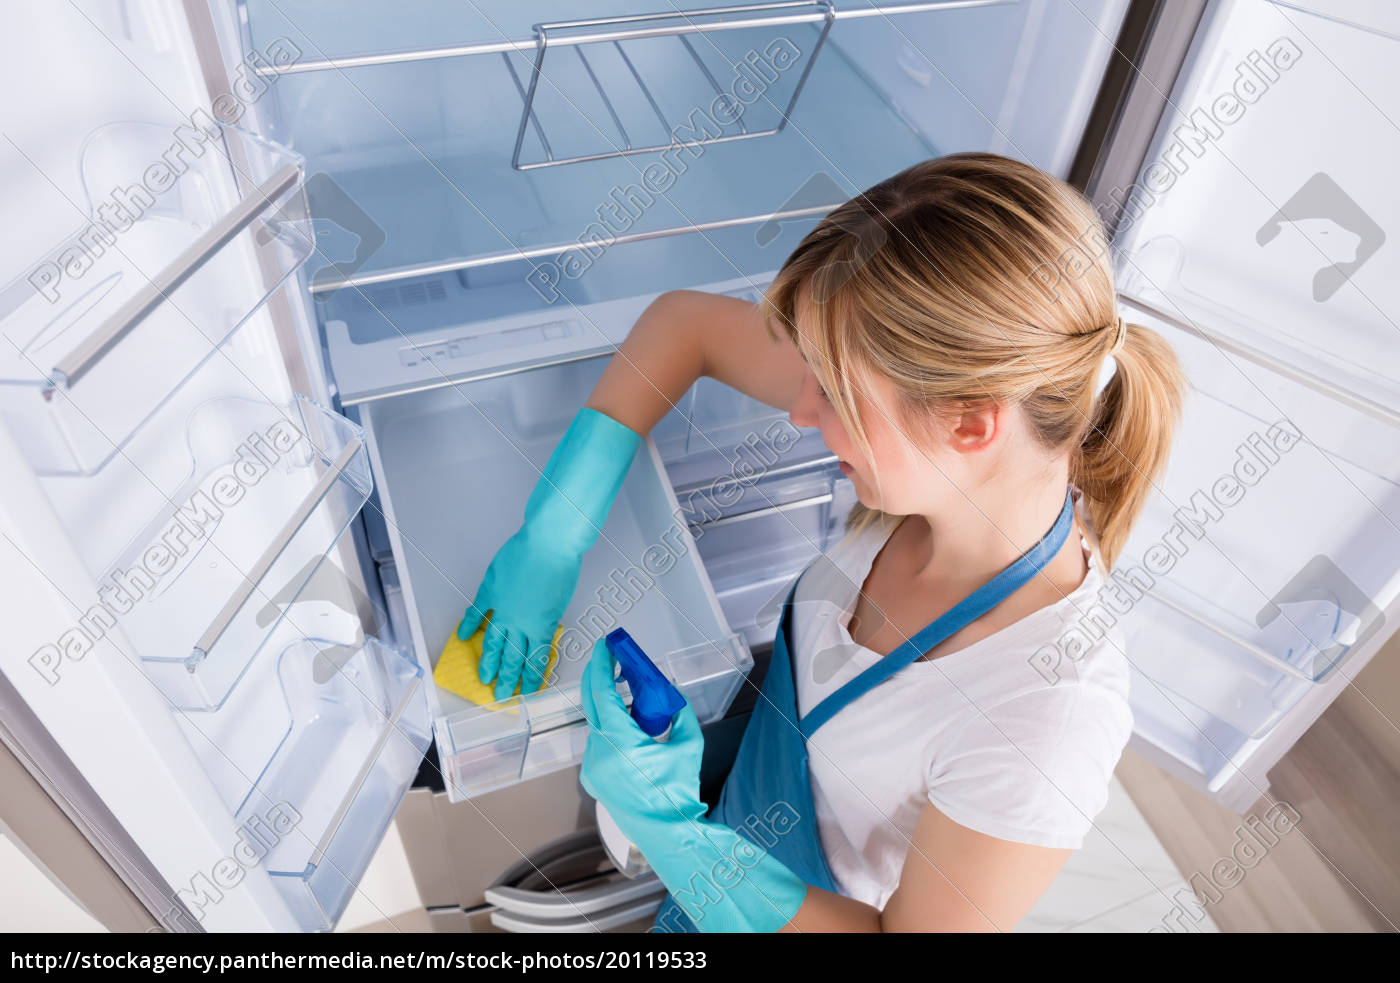 high, angle, view, of, woman, cleaning - 20119533